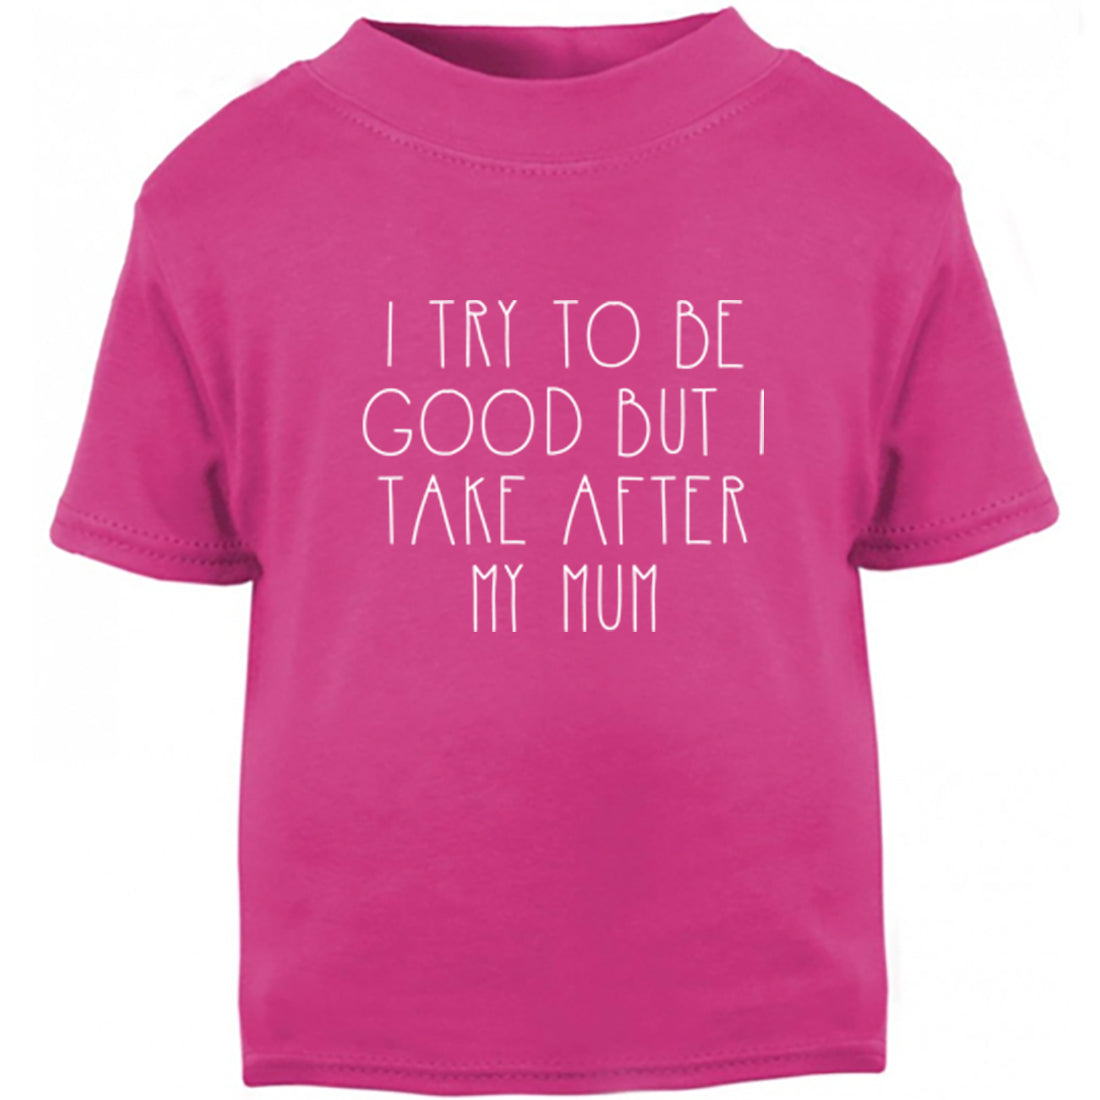 I Try To Be Good But I Take After My Mum Childrens Ages 3/4-12/14 Unisex Fit T-Shirt K1530 - Illustrated Identity Ltd.